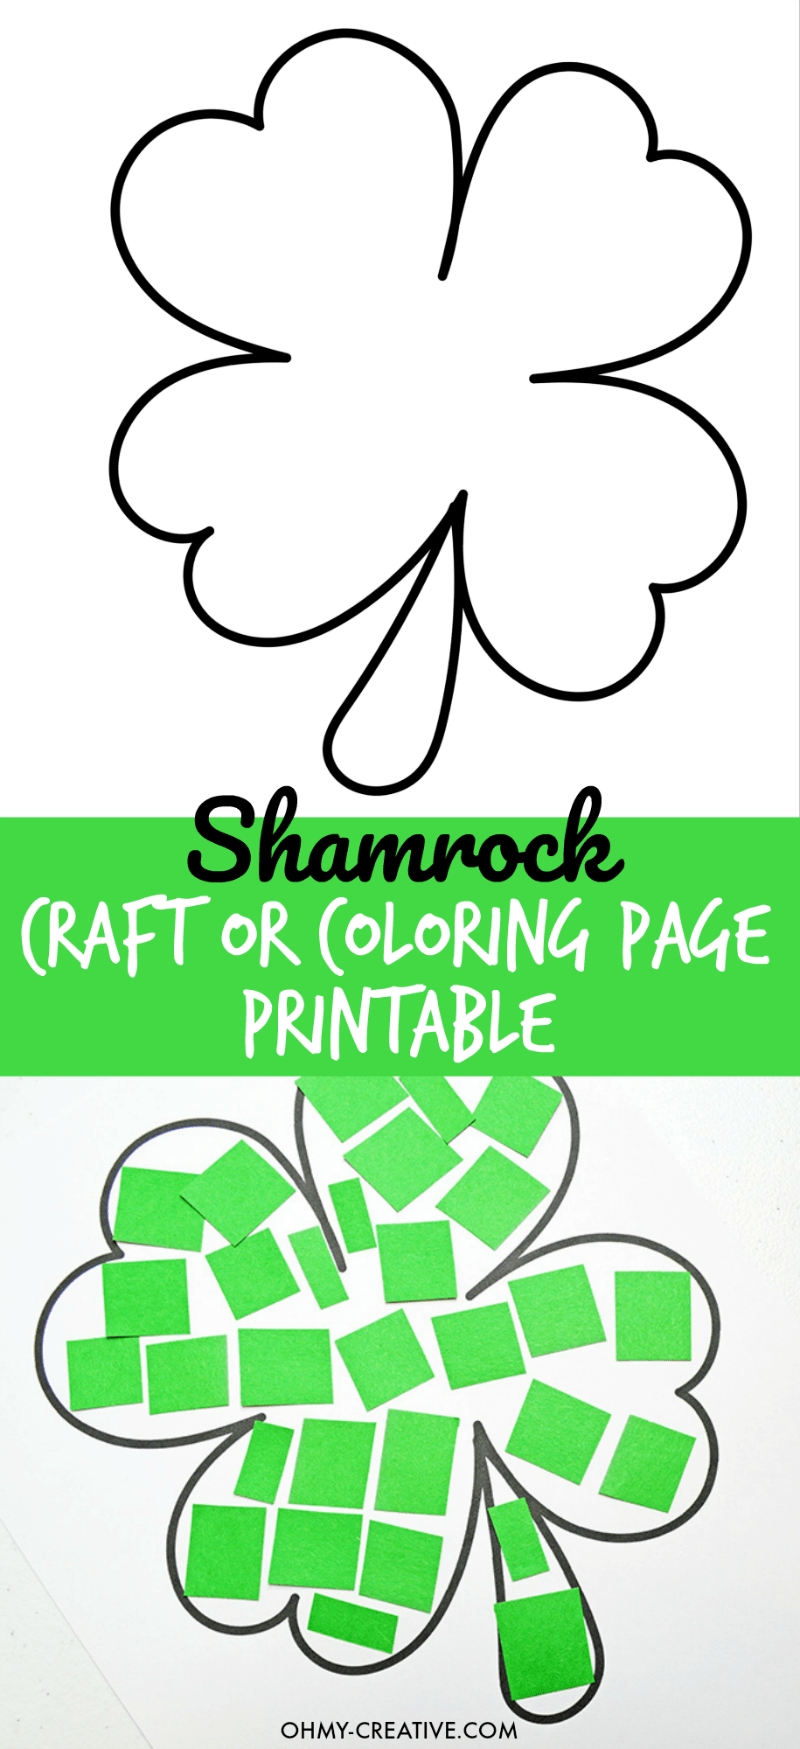 graphic relating to Shamrock Template Printable Free called Lower And Paste Shamrock Template or Coloring Website page - Oh My